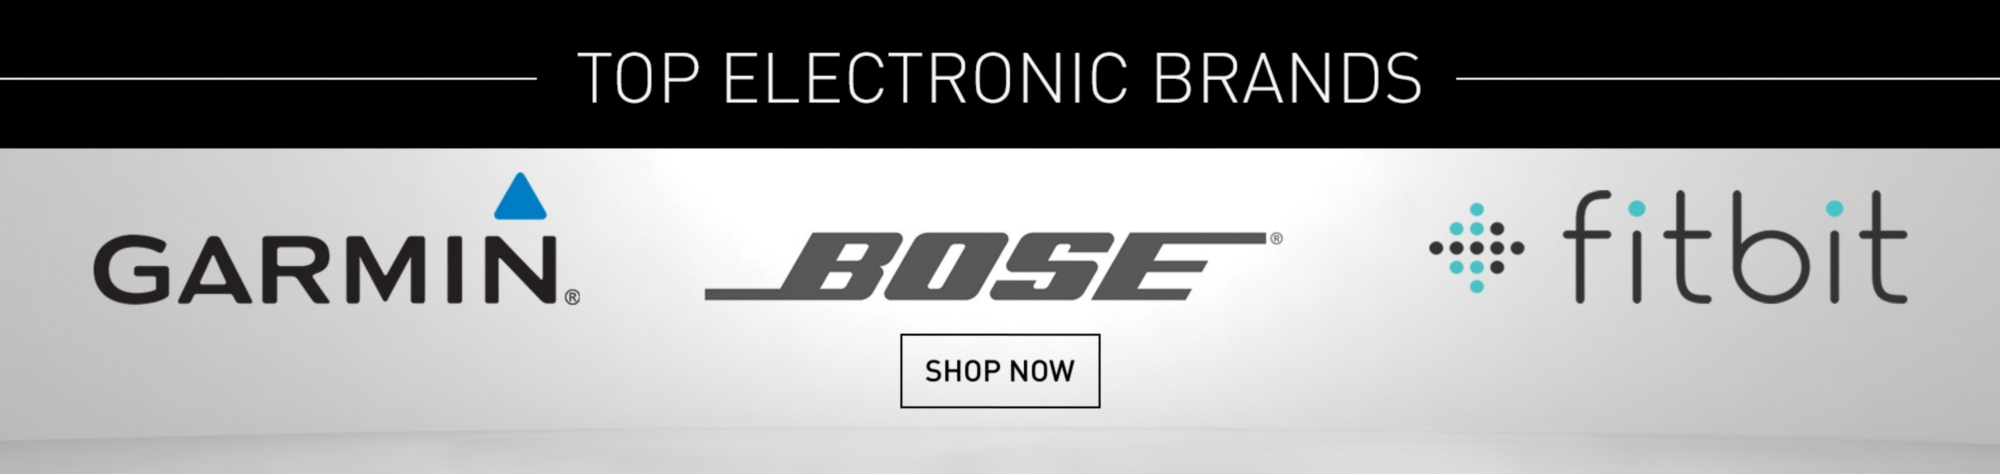 Shop Our Top Electronic Brands